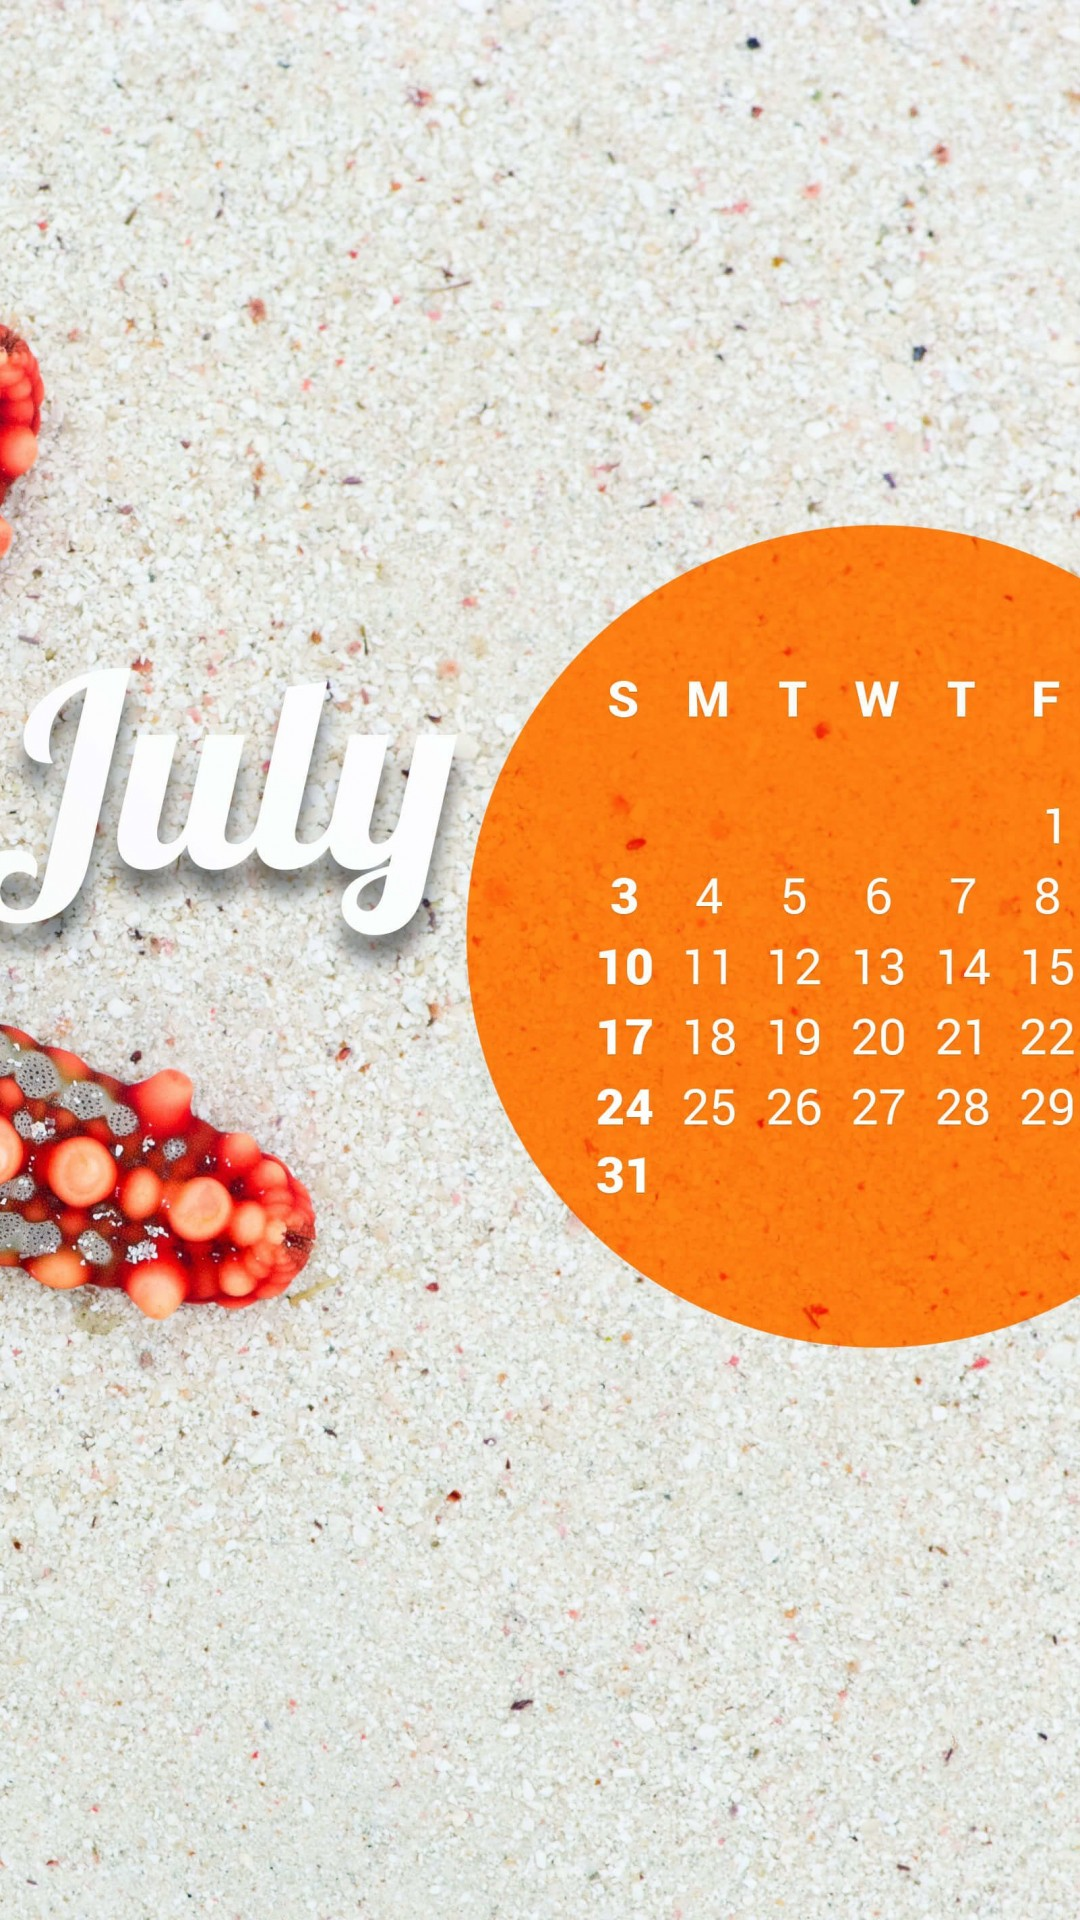 July 2016 Calendar Wallpaper for SONY Xperia Z3